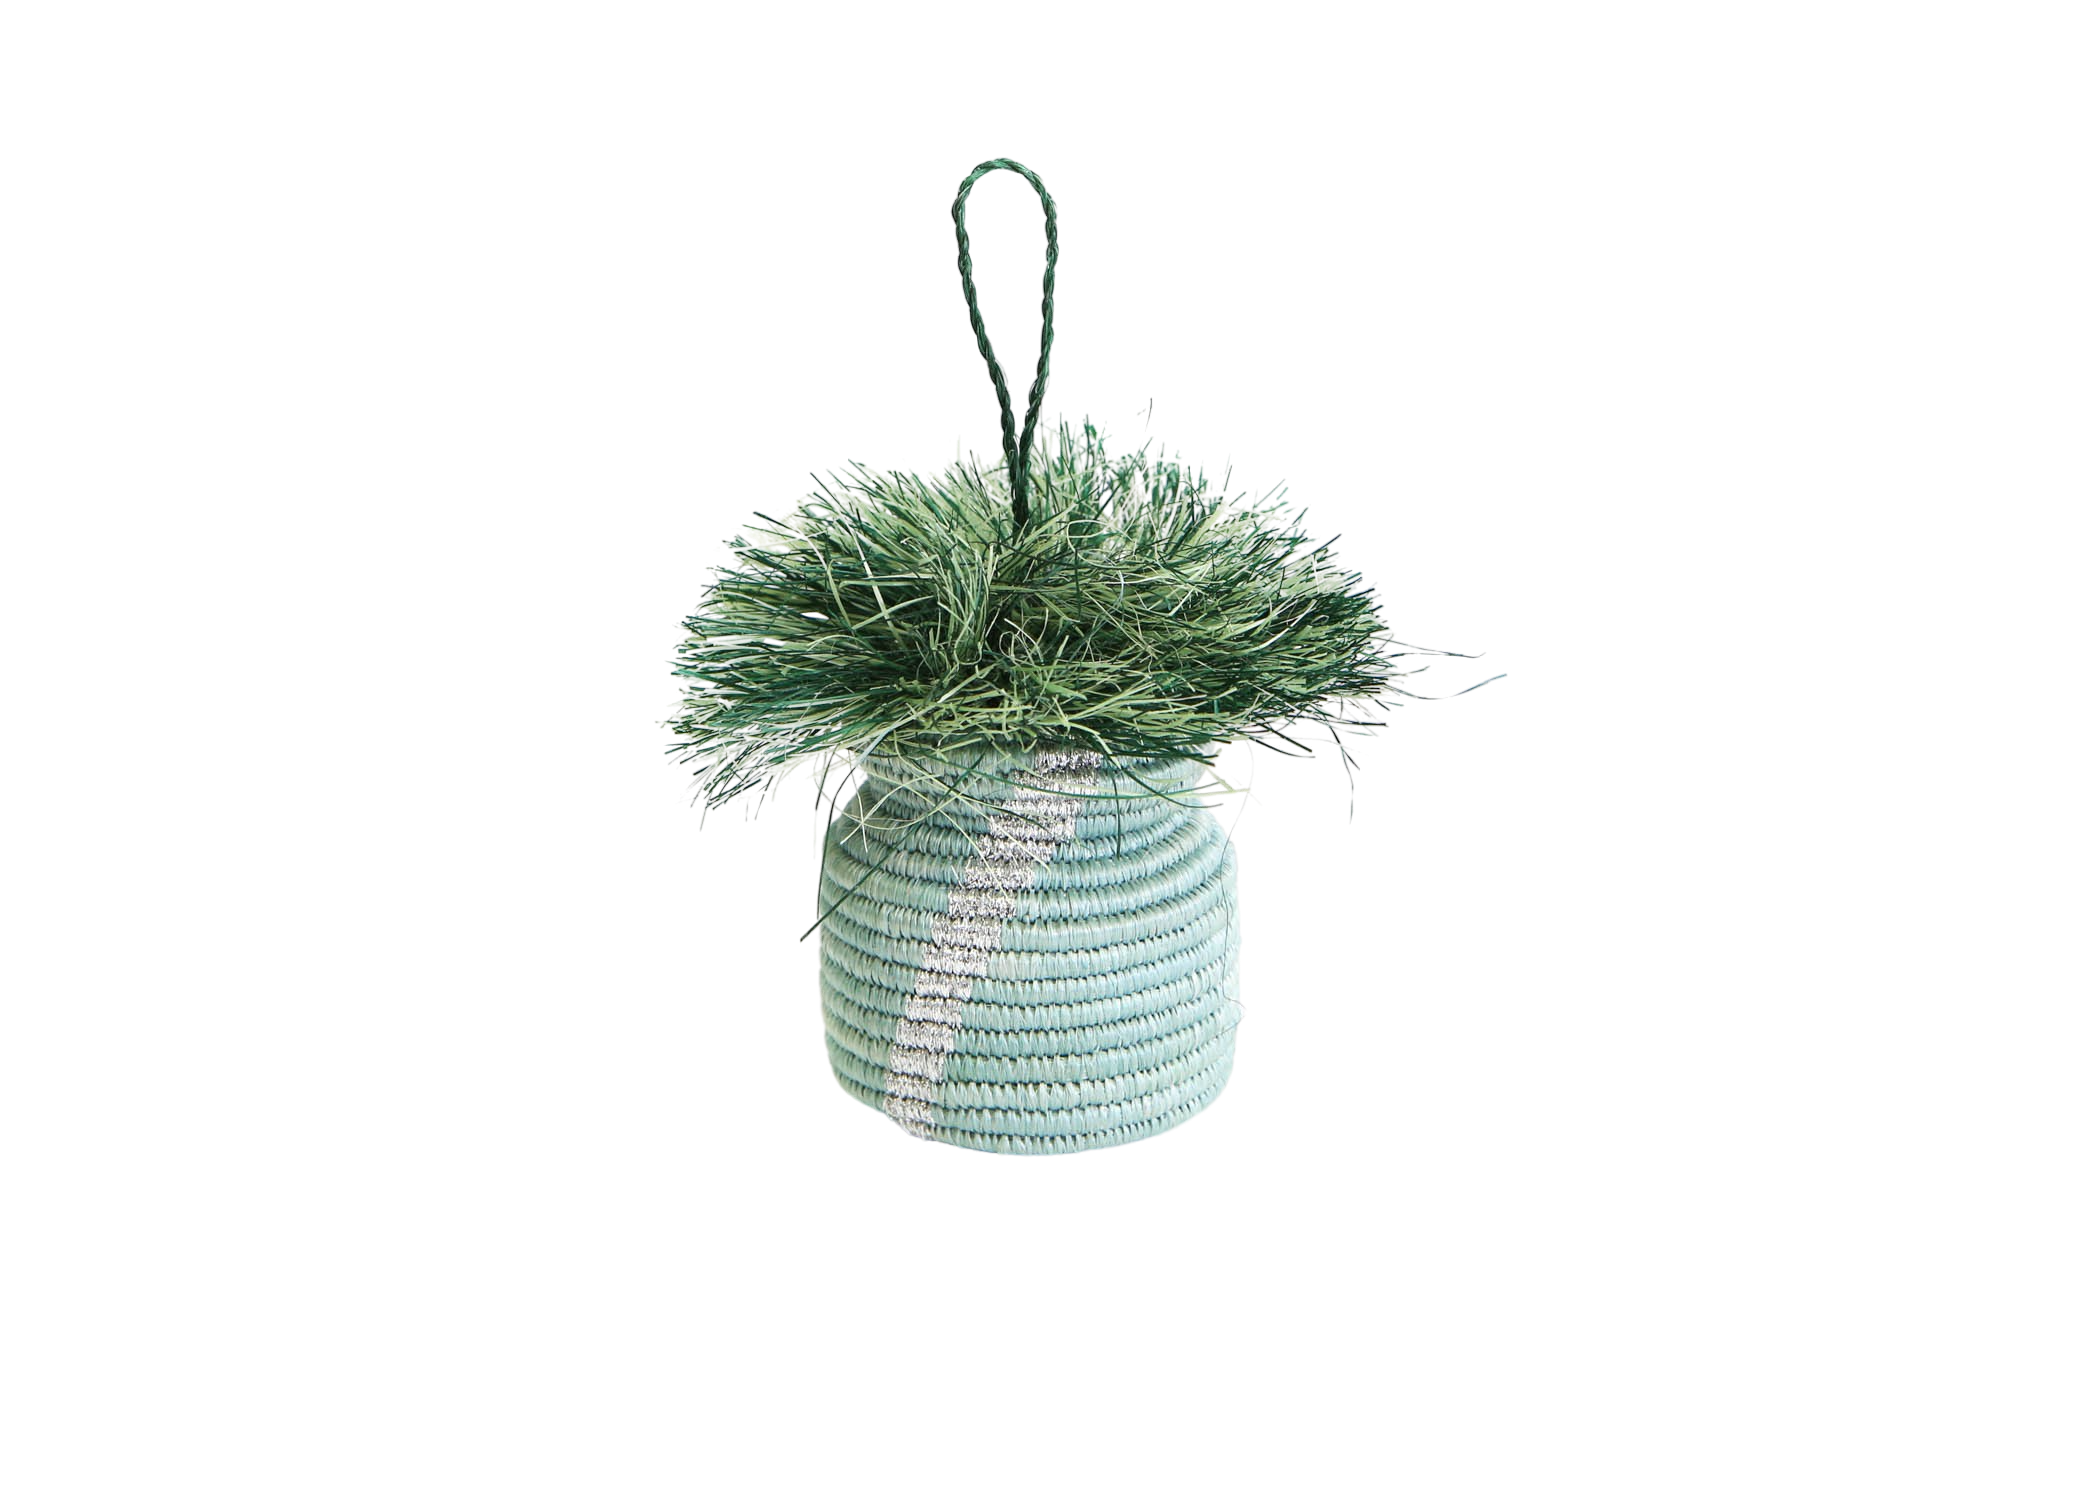 Soft Blue Striped Planter Ornament - KAZI - Artisan made high quality home decor and wall art